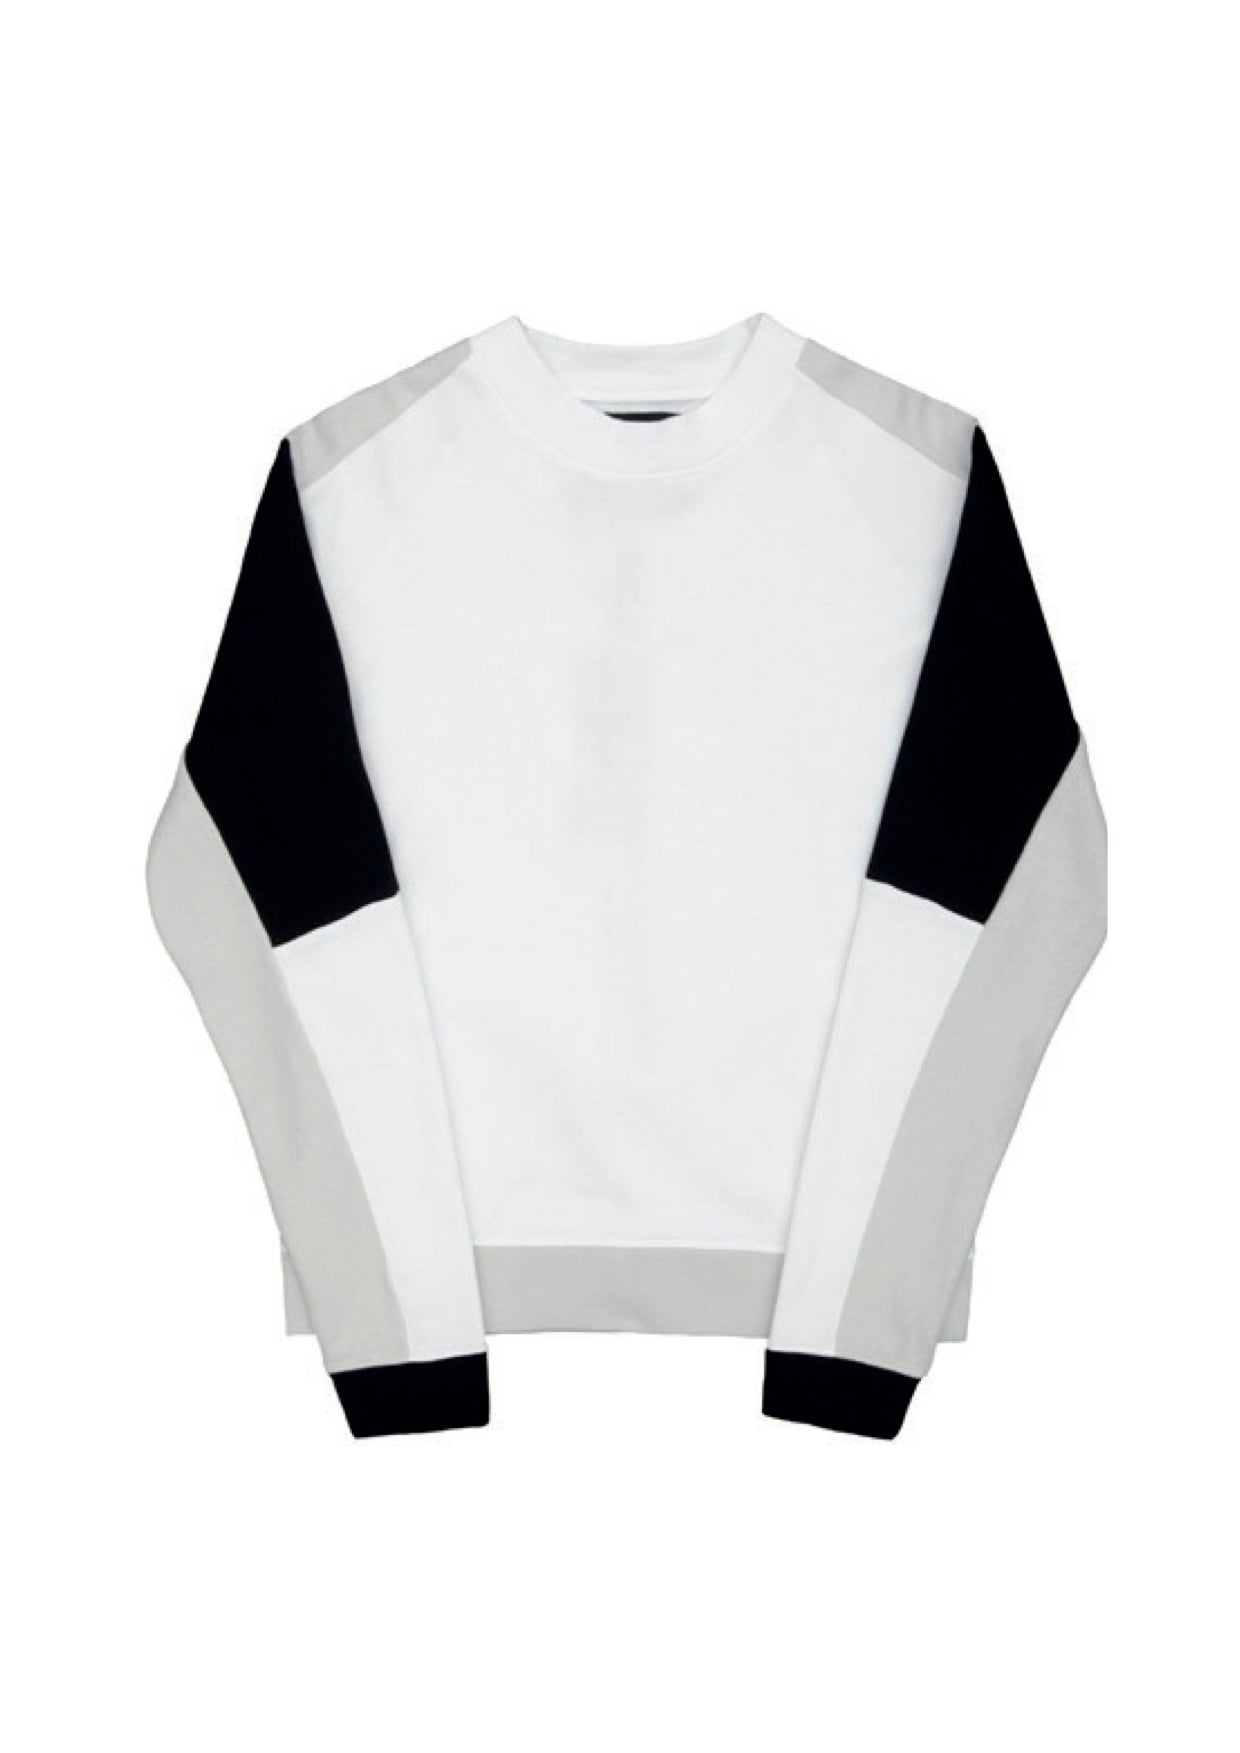 SS15 sweat - white/grey/black